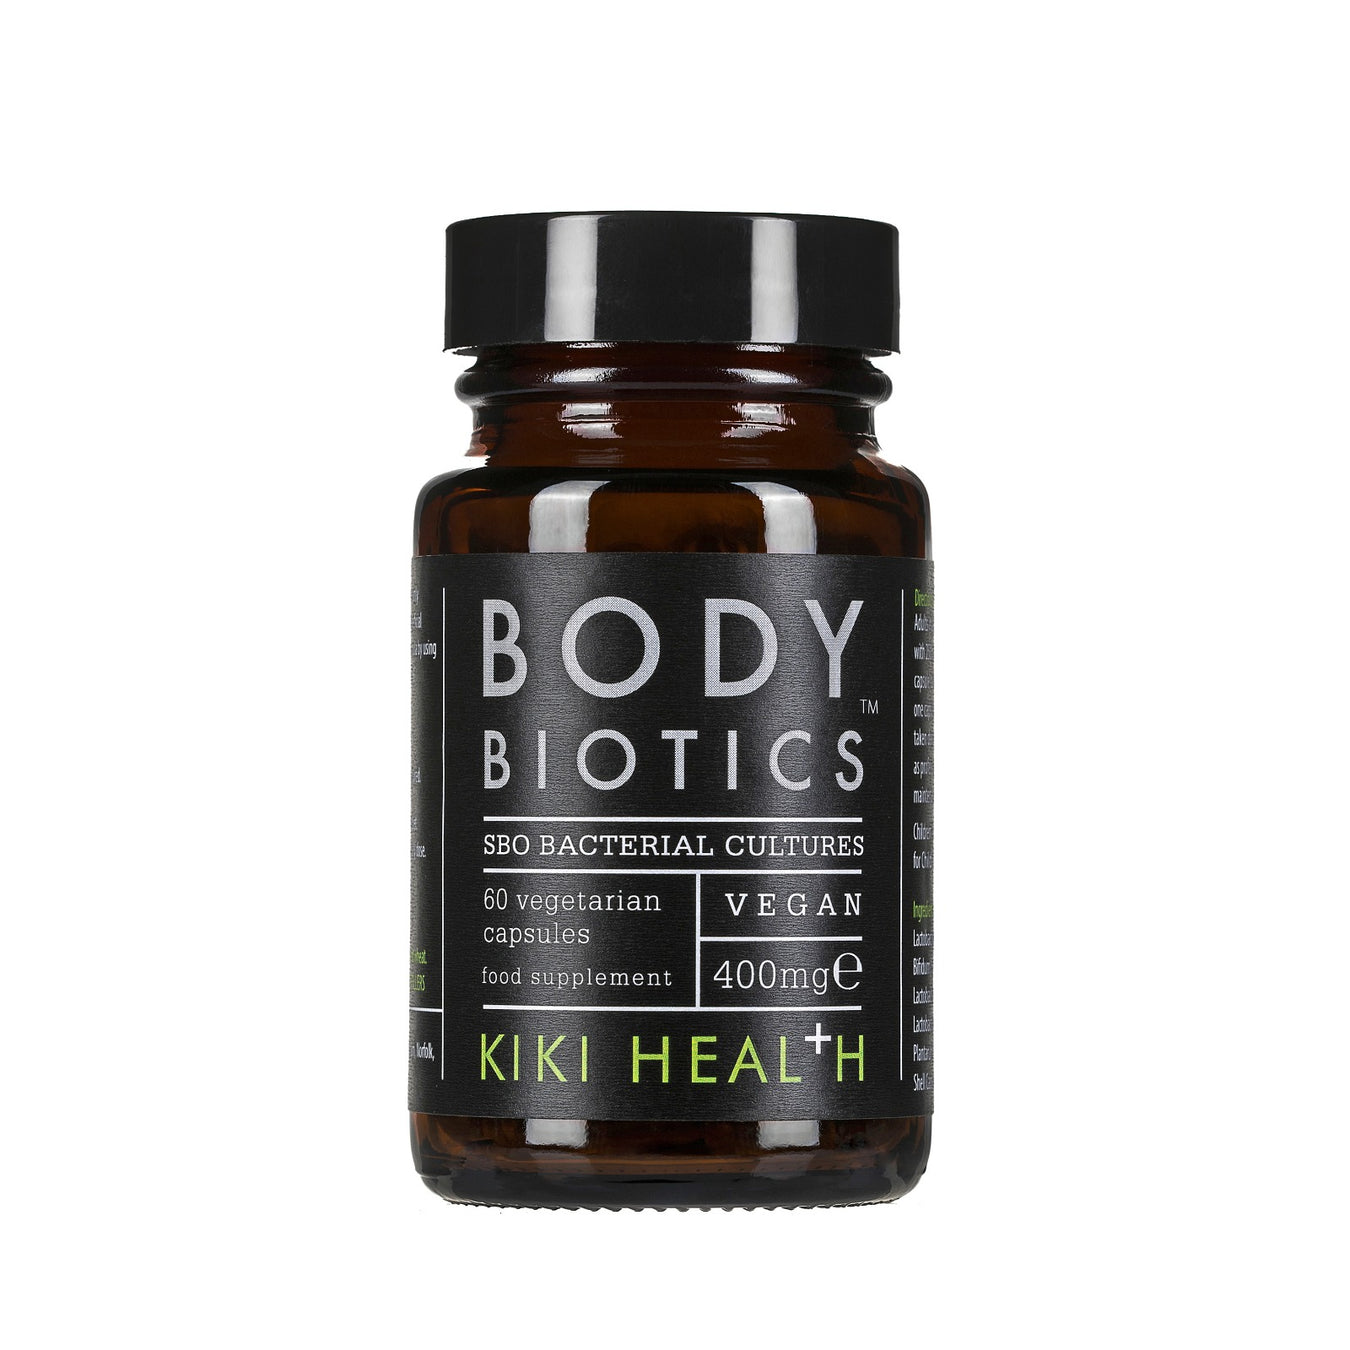 土壤配方益生菌 Kiki Health Body Biotics (60 capsules)